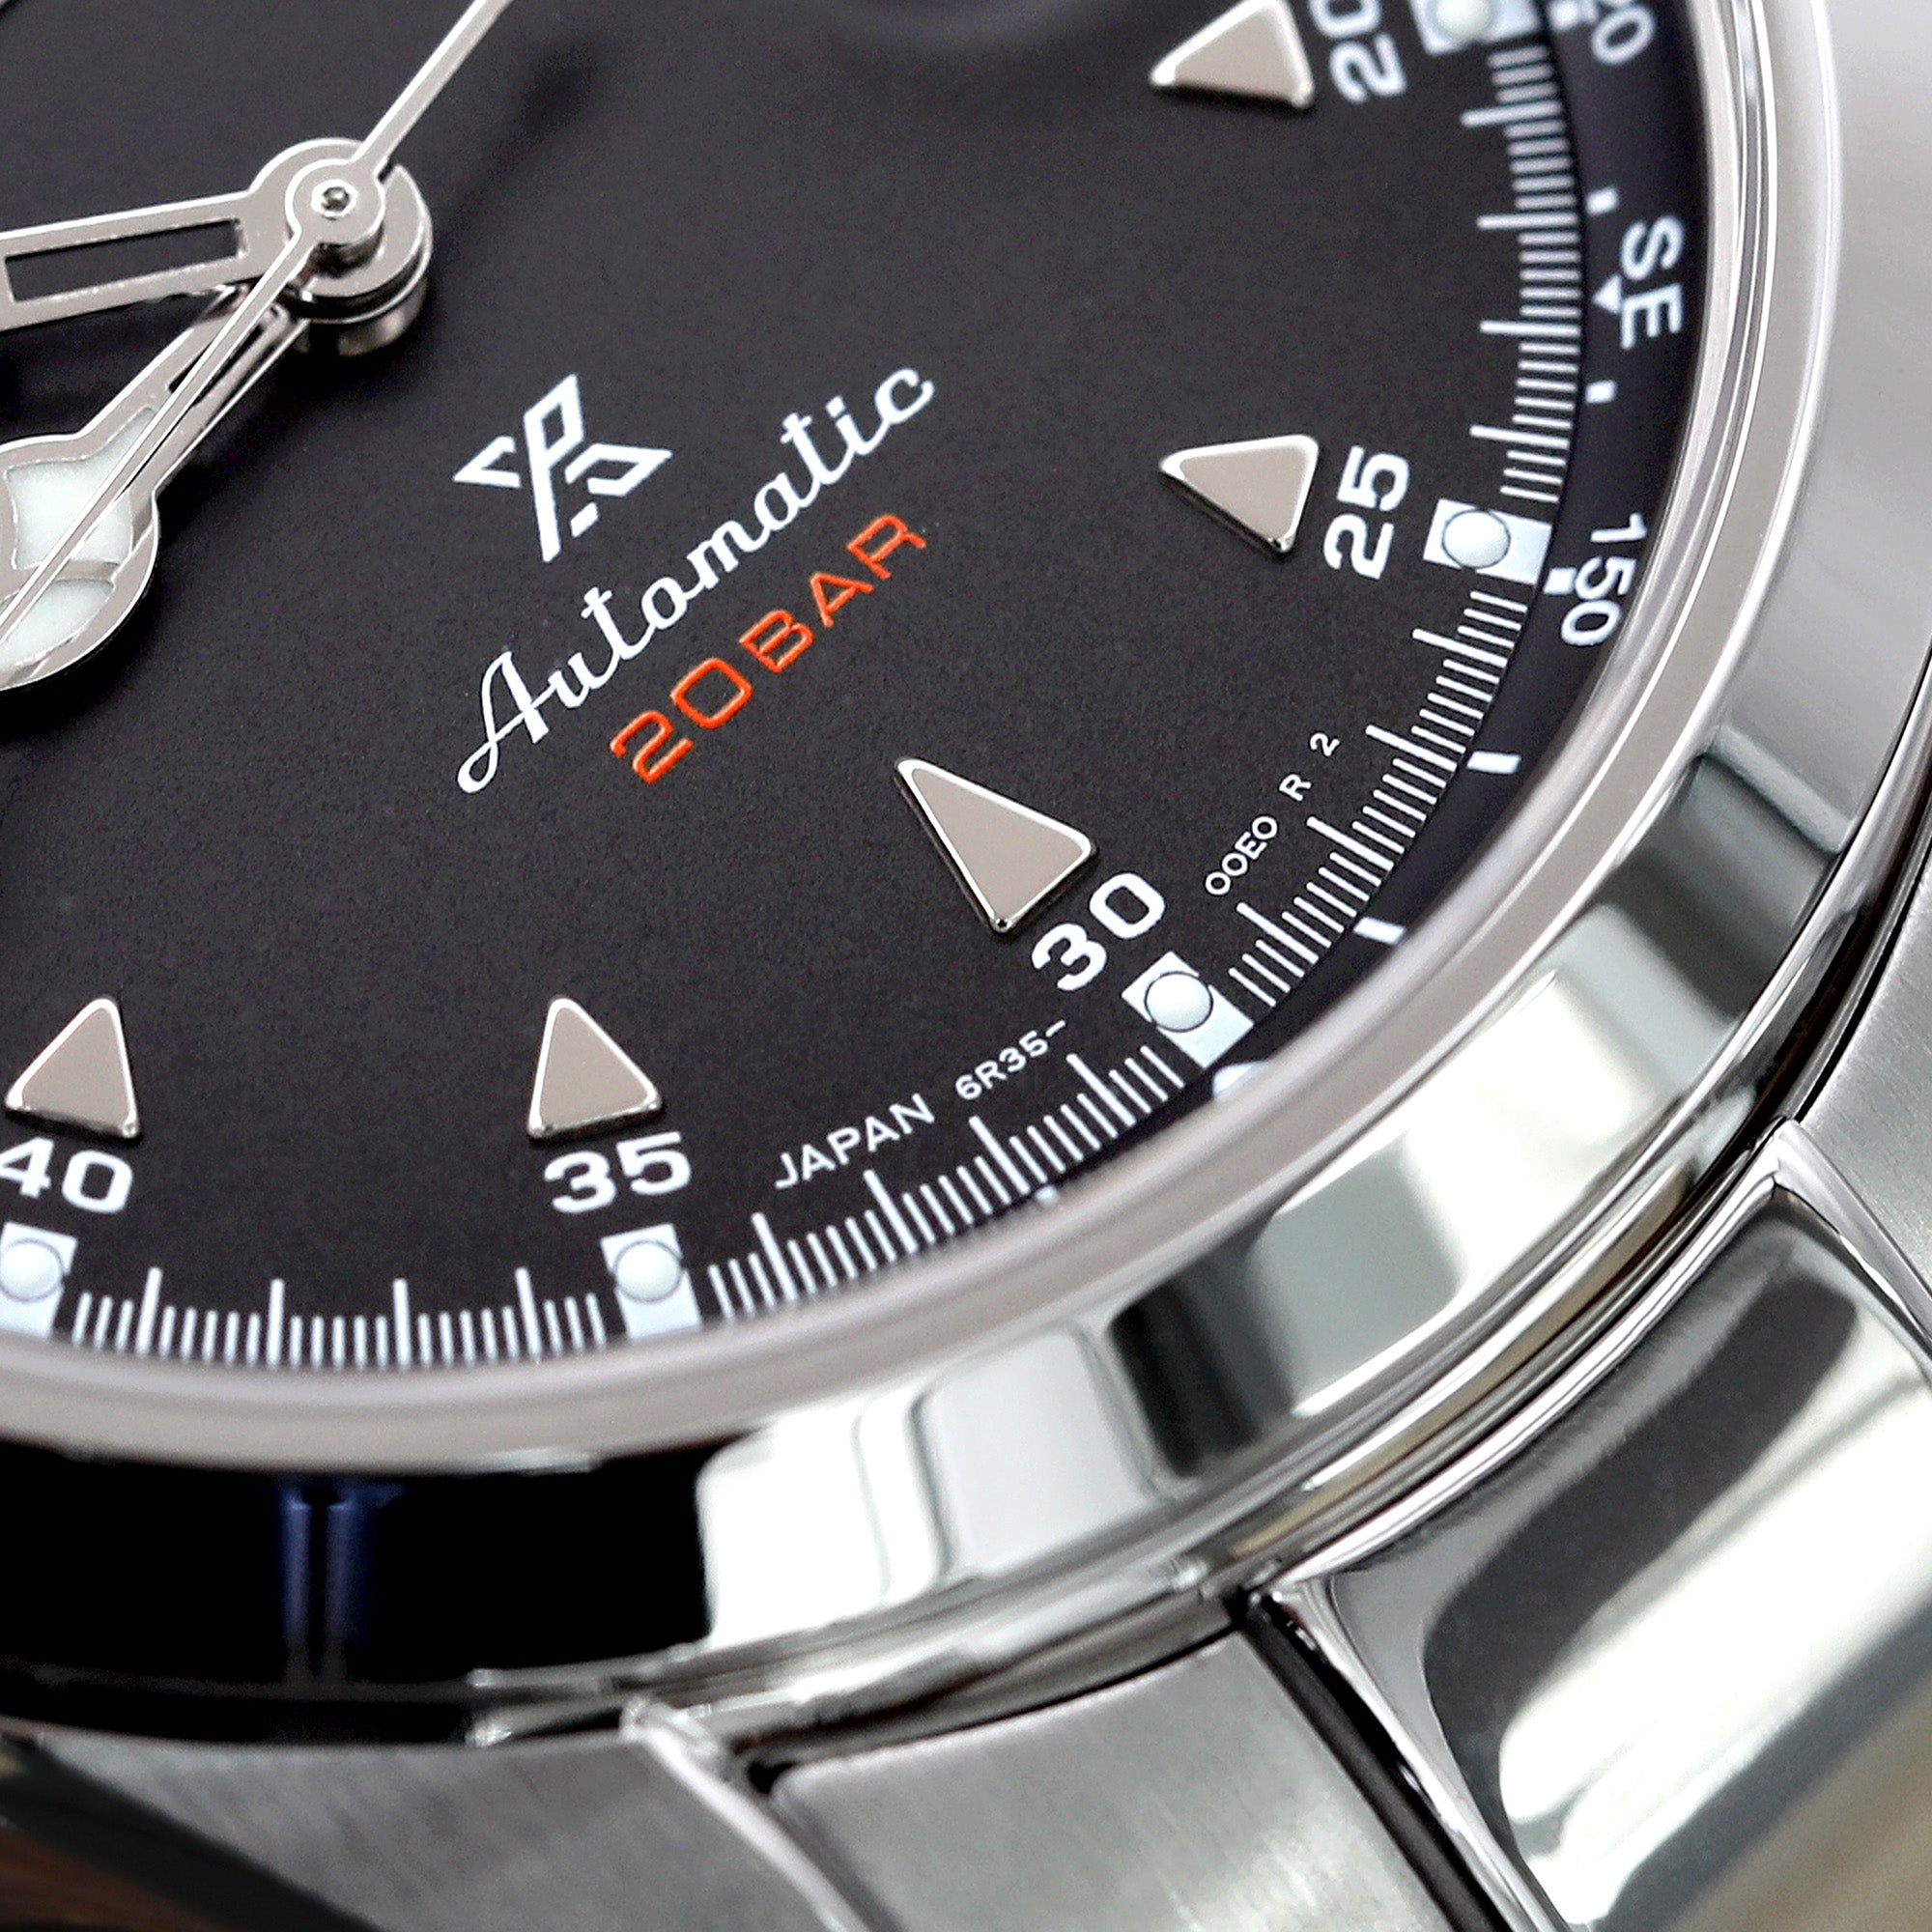 Seiko Alpinist Black SBDC087 Prospex Badge closeup